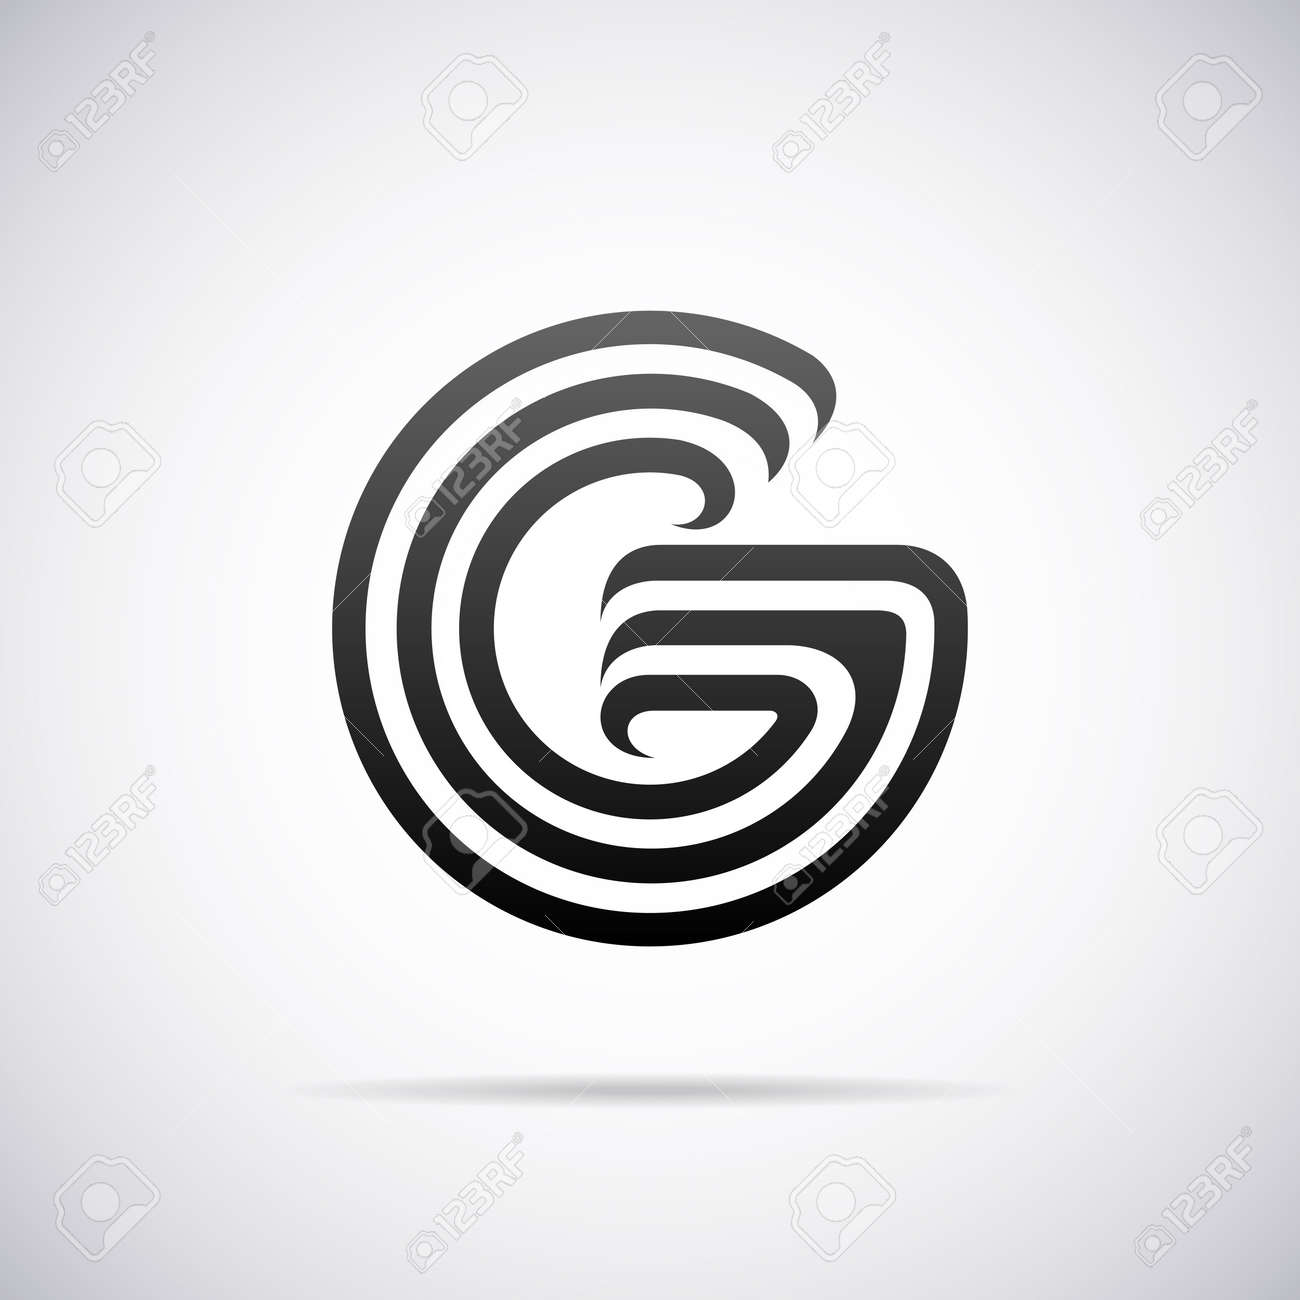 Letter G Design Template Vector Illustration Royalty Free Cliparts